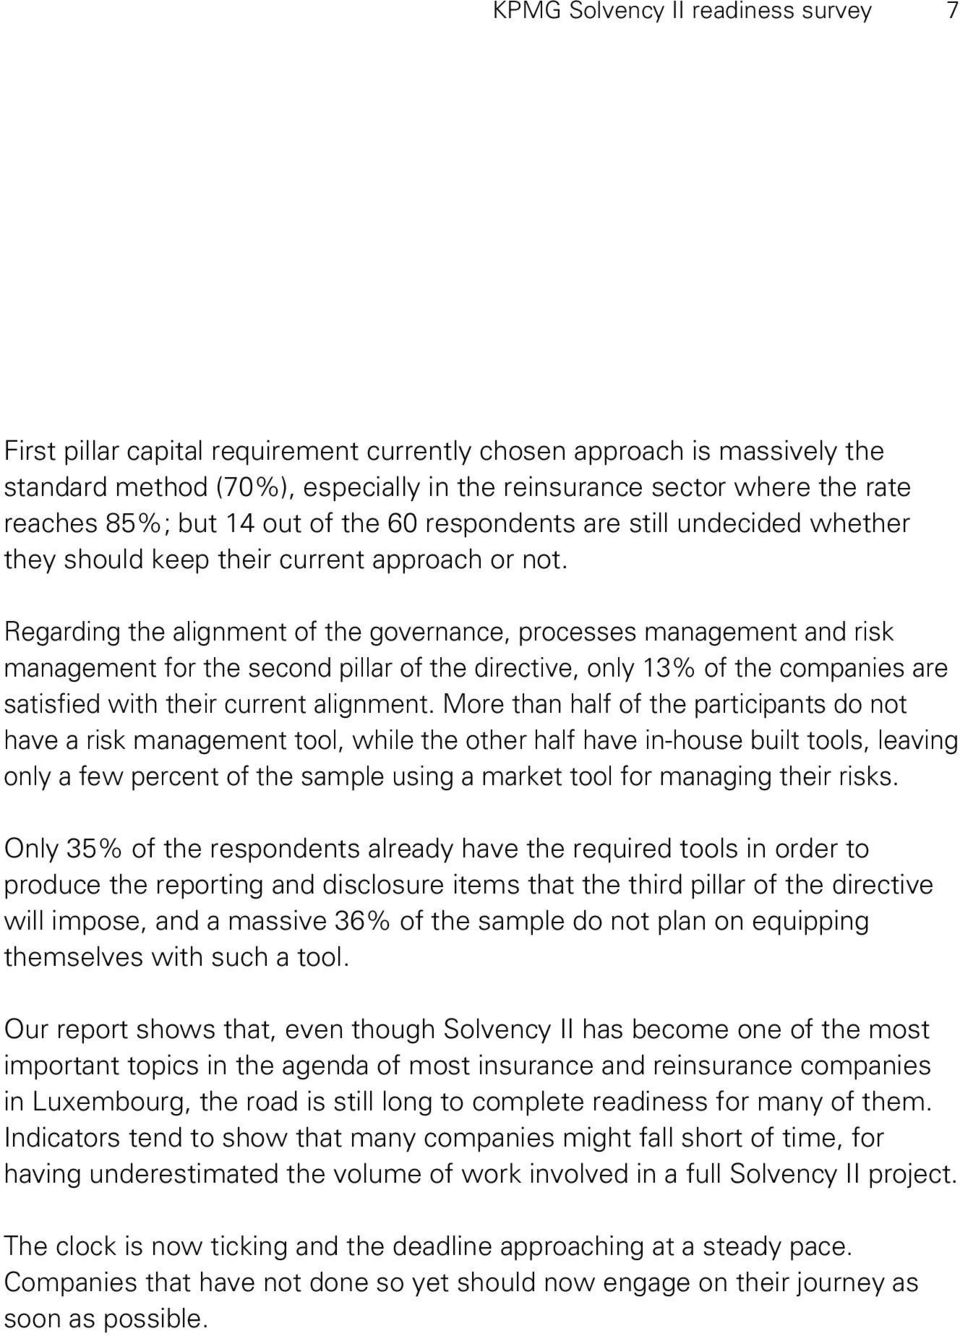 Regarding the alignment of the governance, processes management and risk management for the second pillar of the directive, only 13% of the companies are satisfied with their current alignment.